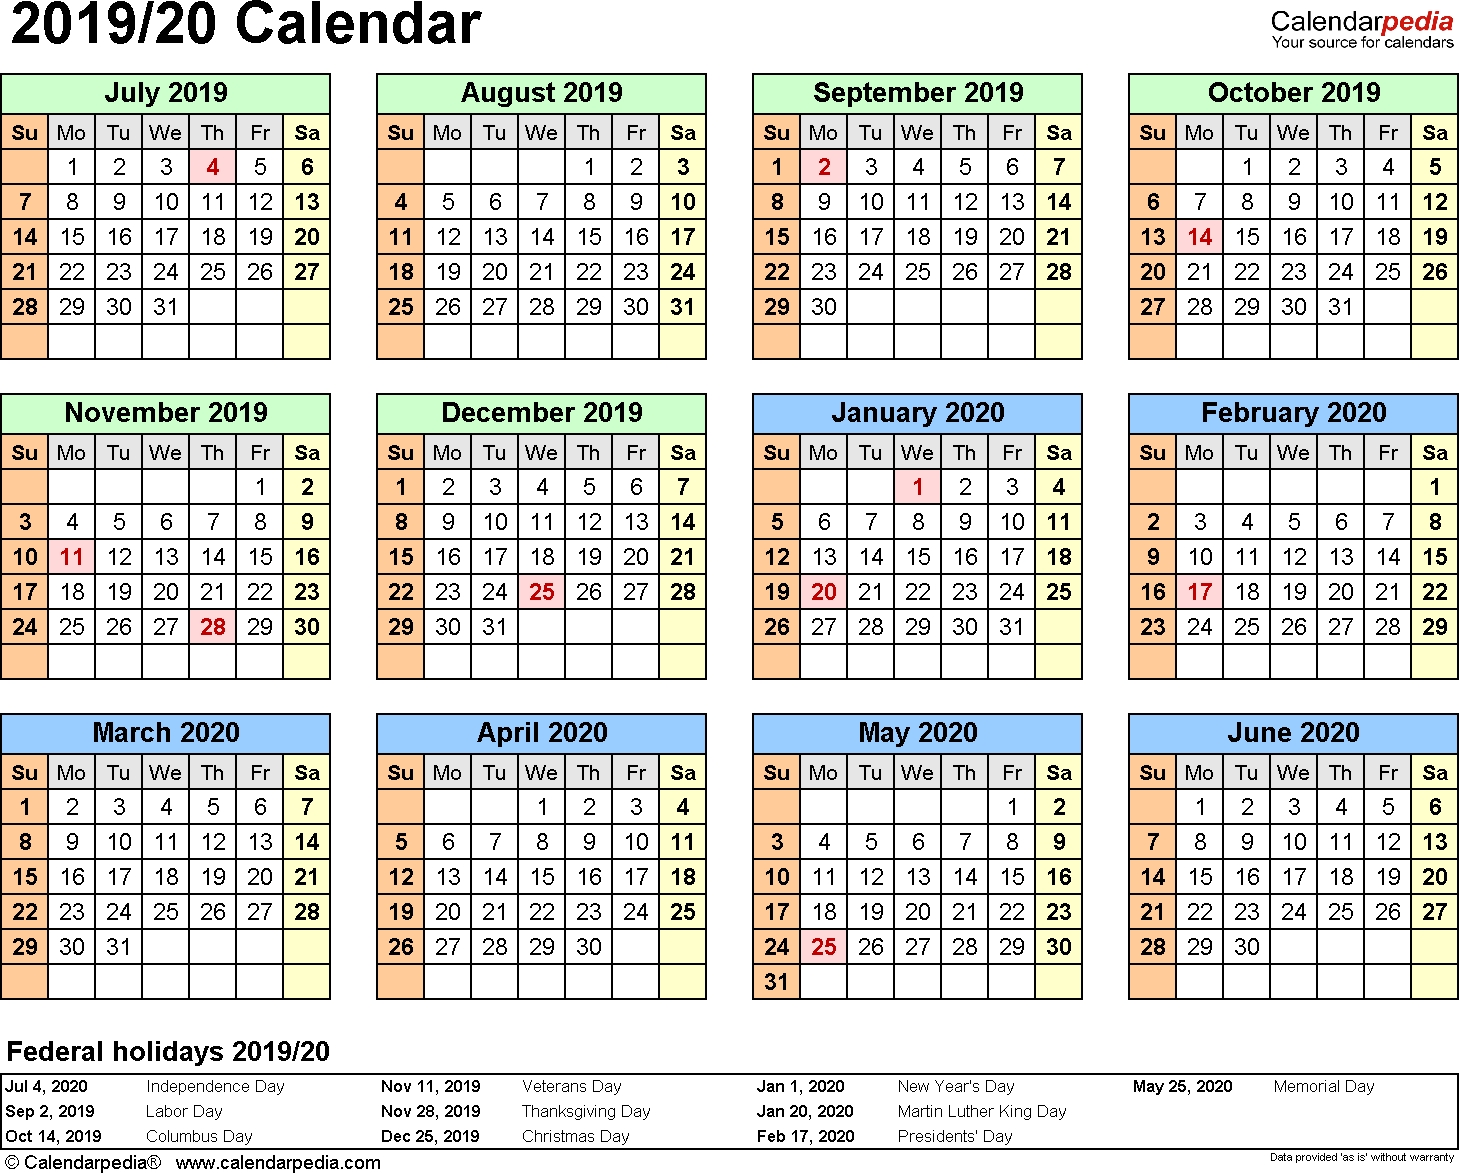 Split Year Calendar 2019/20 (July To June) - Pdf Templates throughout Year At A Glance Printable Calendar 2019/2020